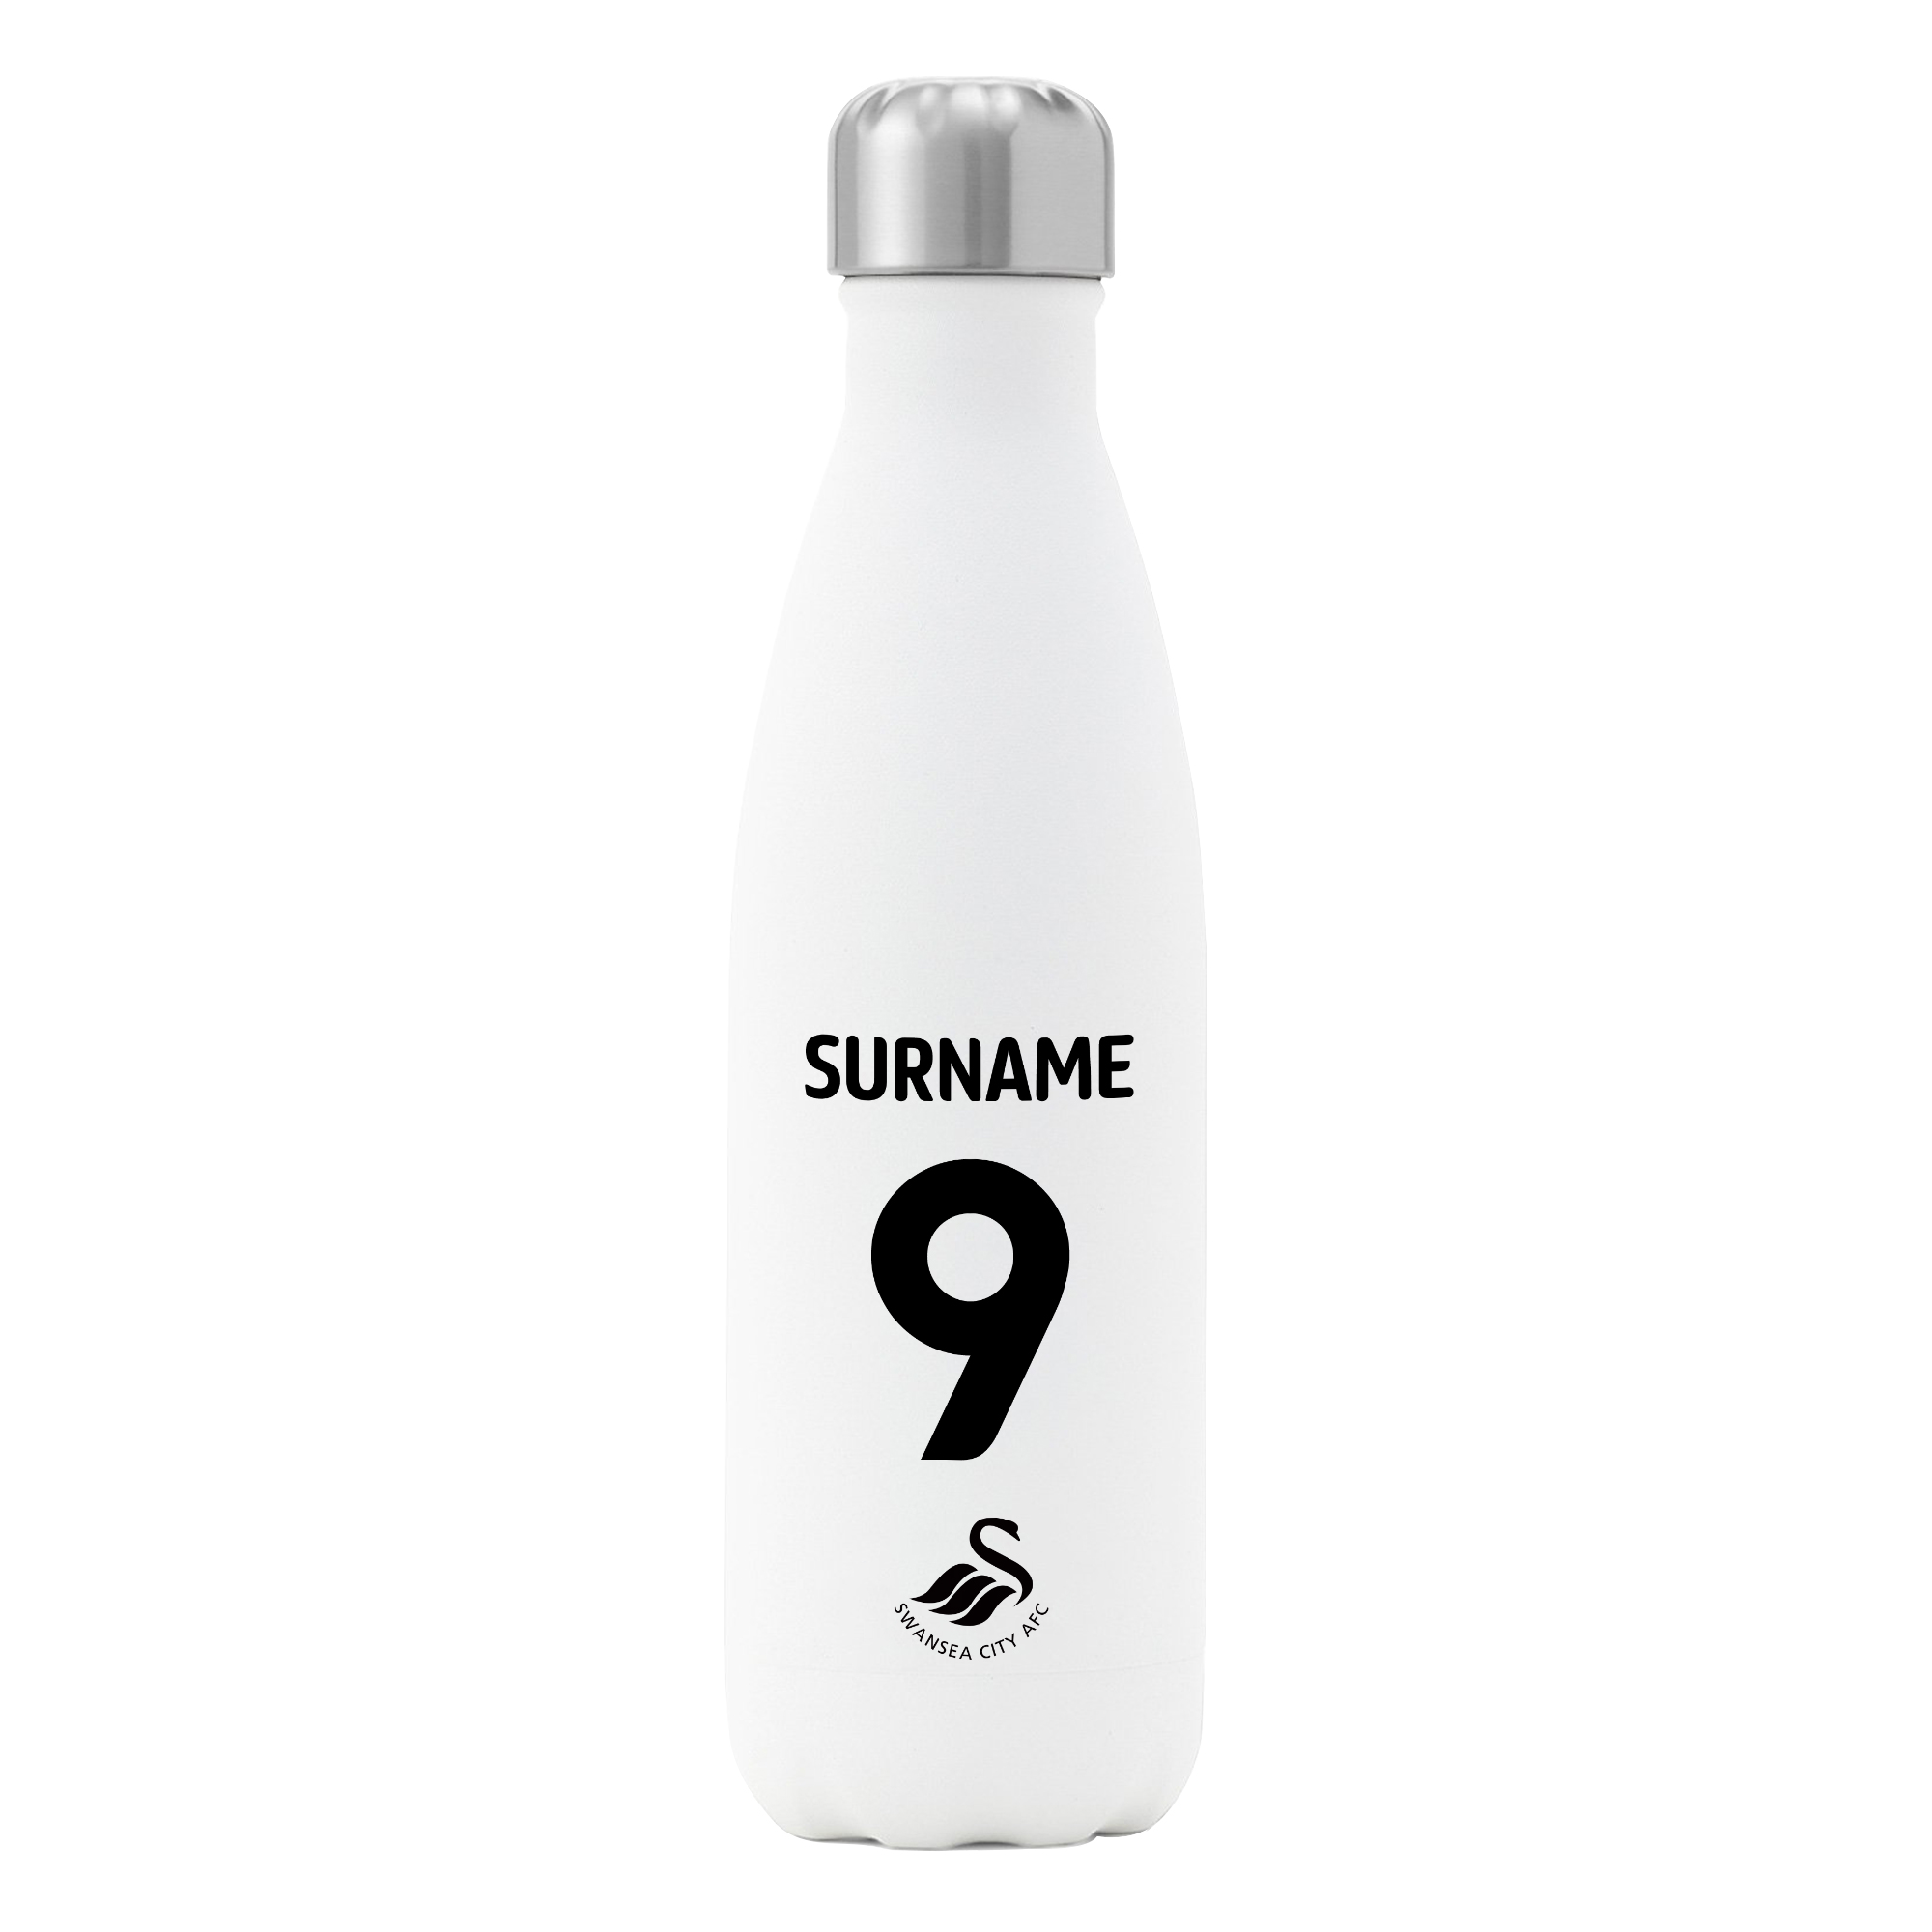 Personalised Swansea City FC Shirt Insulated Water Bottle – White